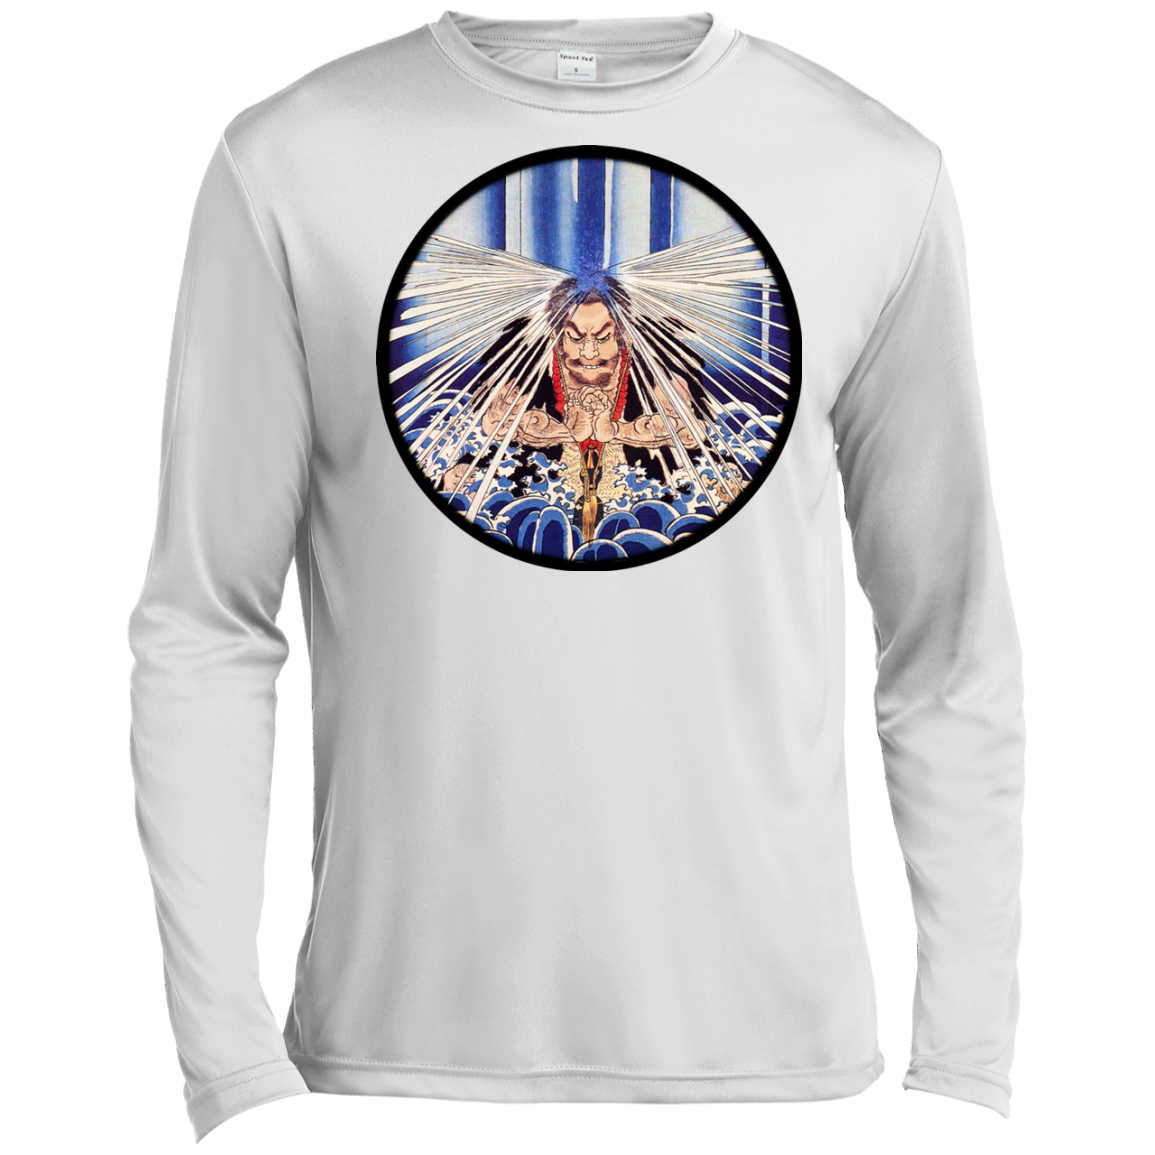 Meditating Samurai Long Sleeve Moisture Wicking - Martial Arts, Brazilian Jiujitsu, Karate, Muay Thai Shirts